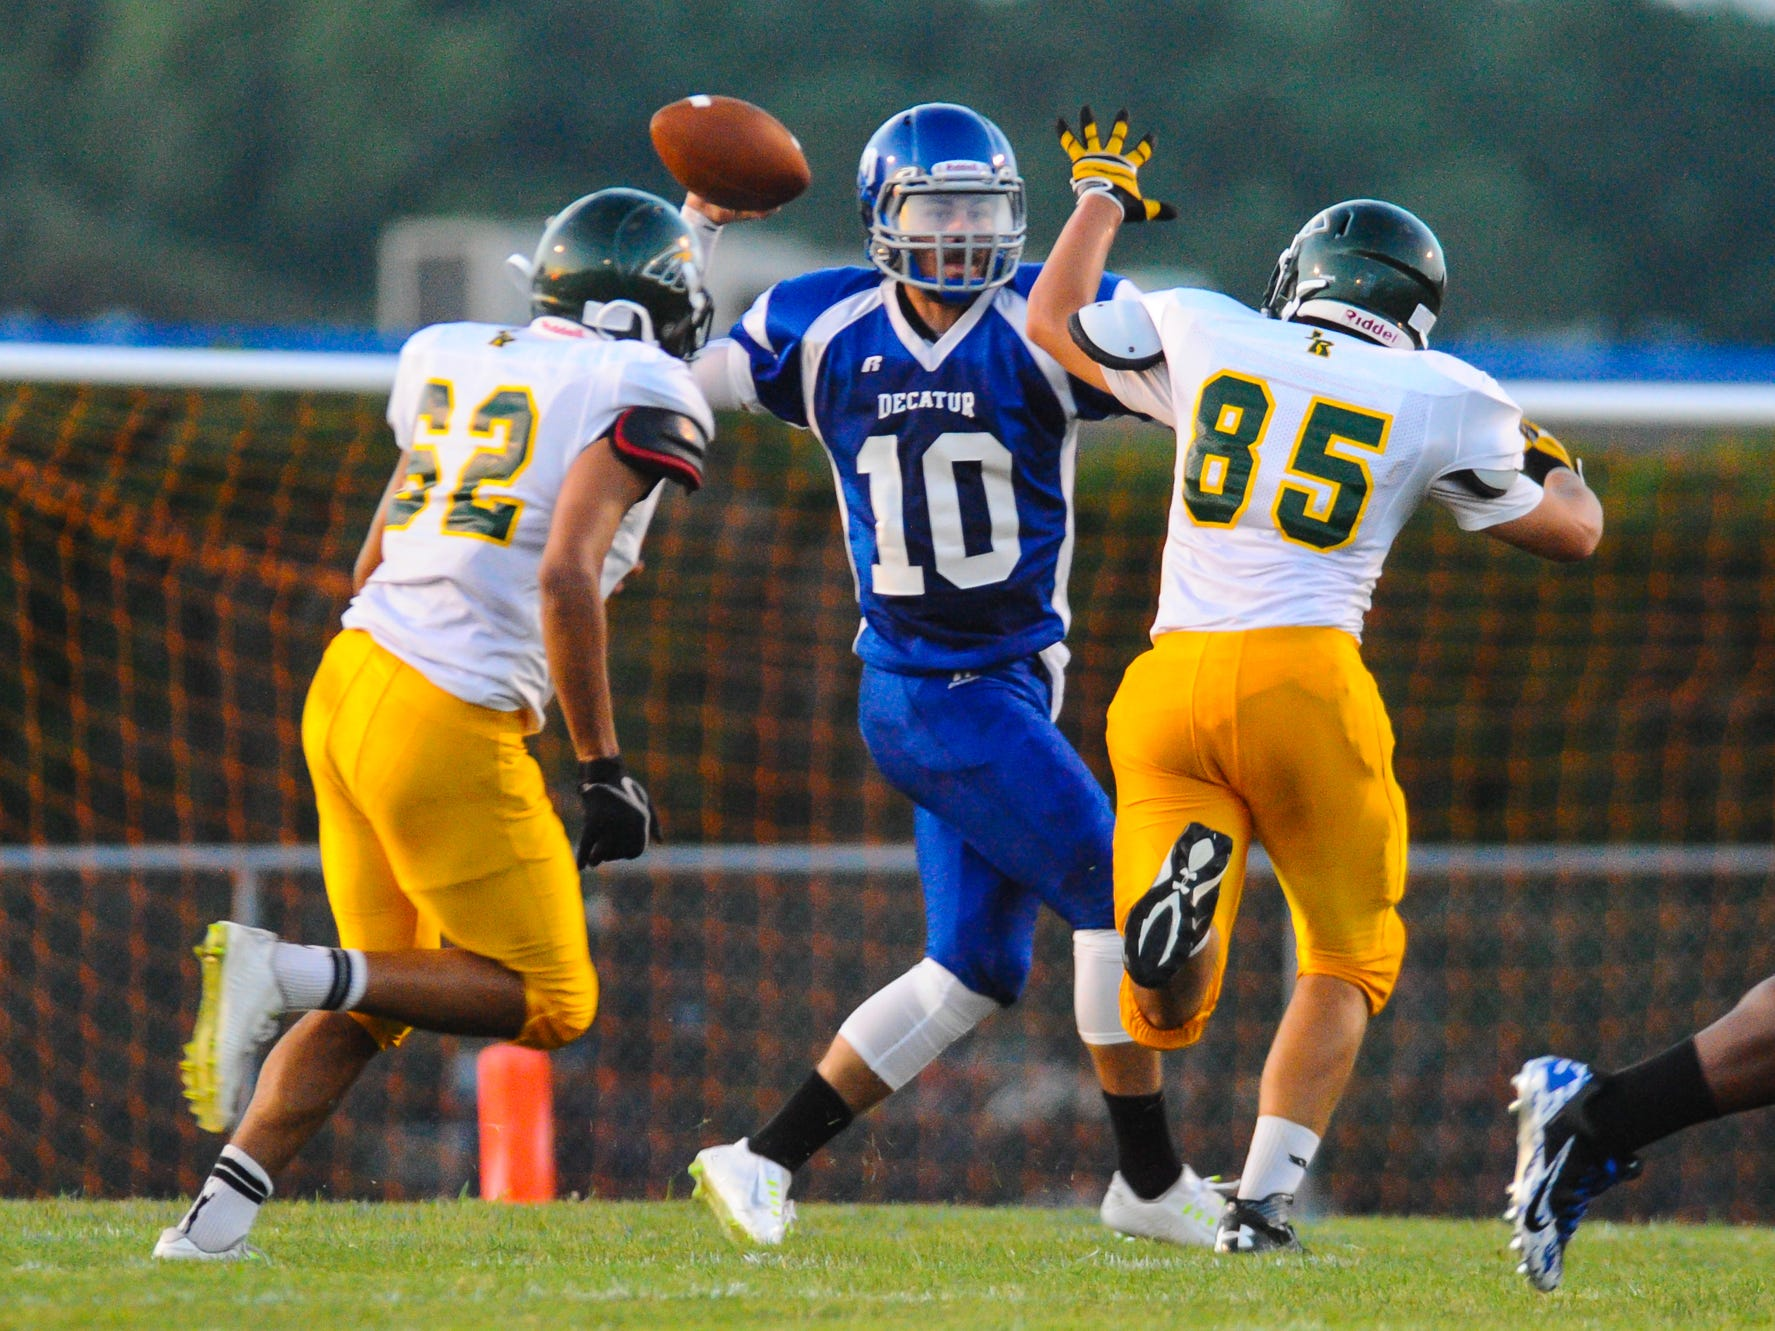 Stephen Decatur quarterback Justin Meekins drops back for a pass against Indian River on Friday night in Berlin.